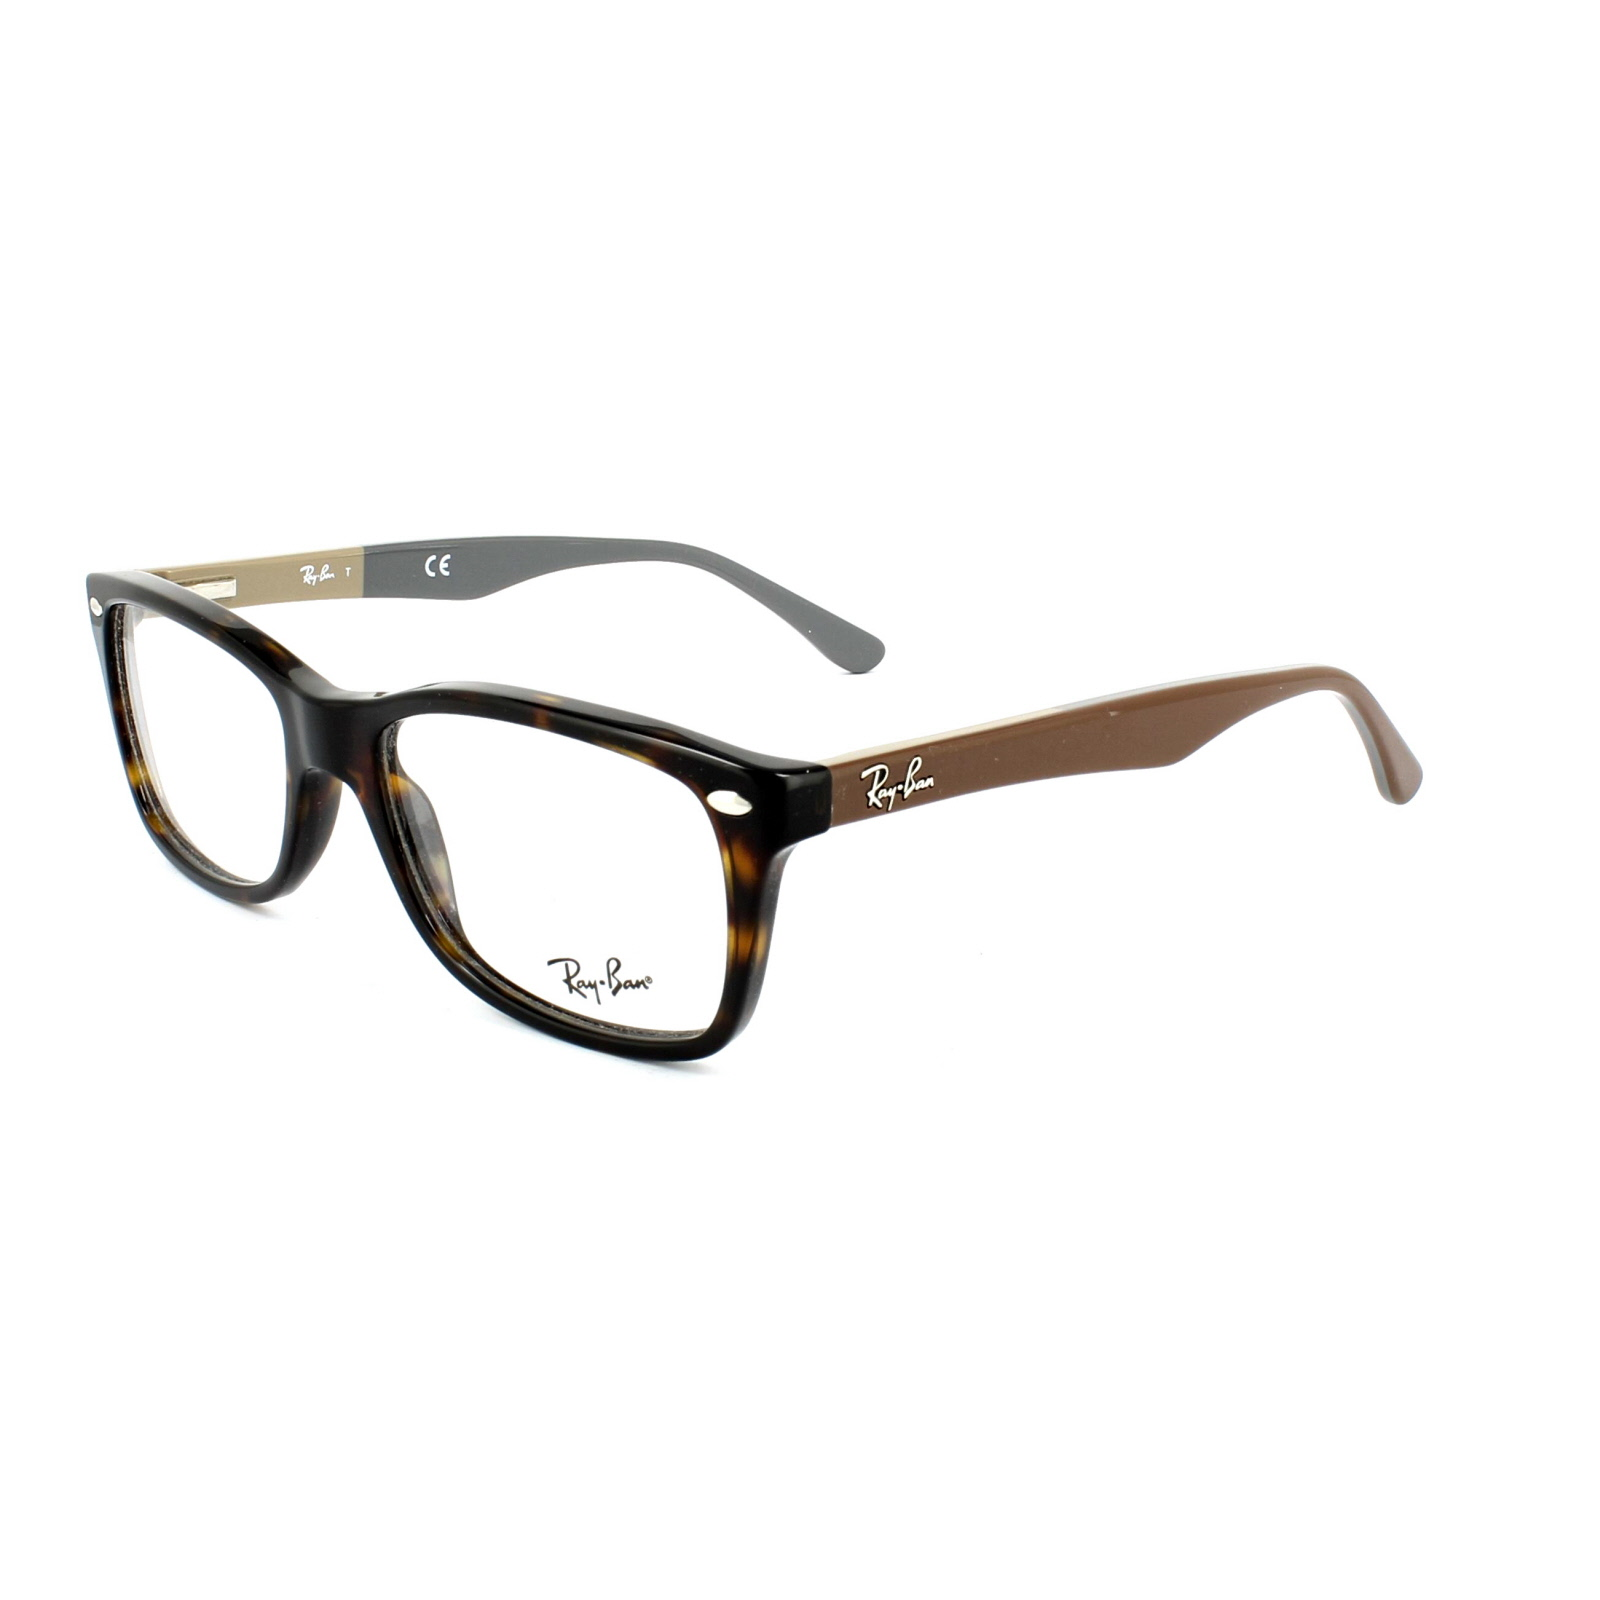 44d46ae50265 Sentinel Ray-Ban Glasses Frames 5228 5545 Havana   Brown on Beige Grey